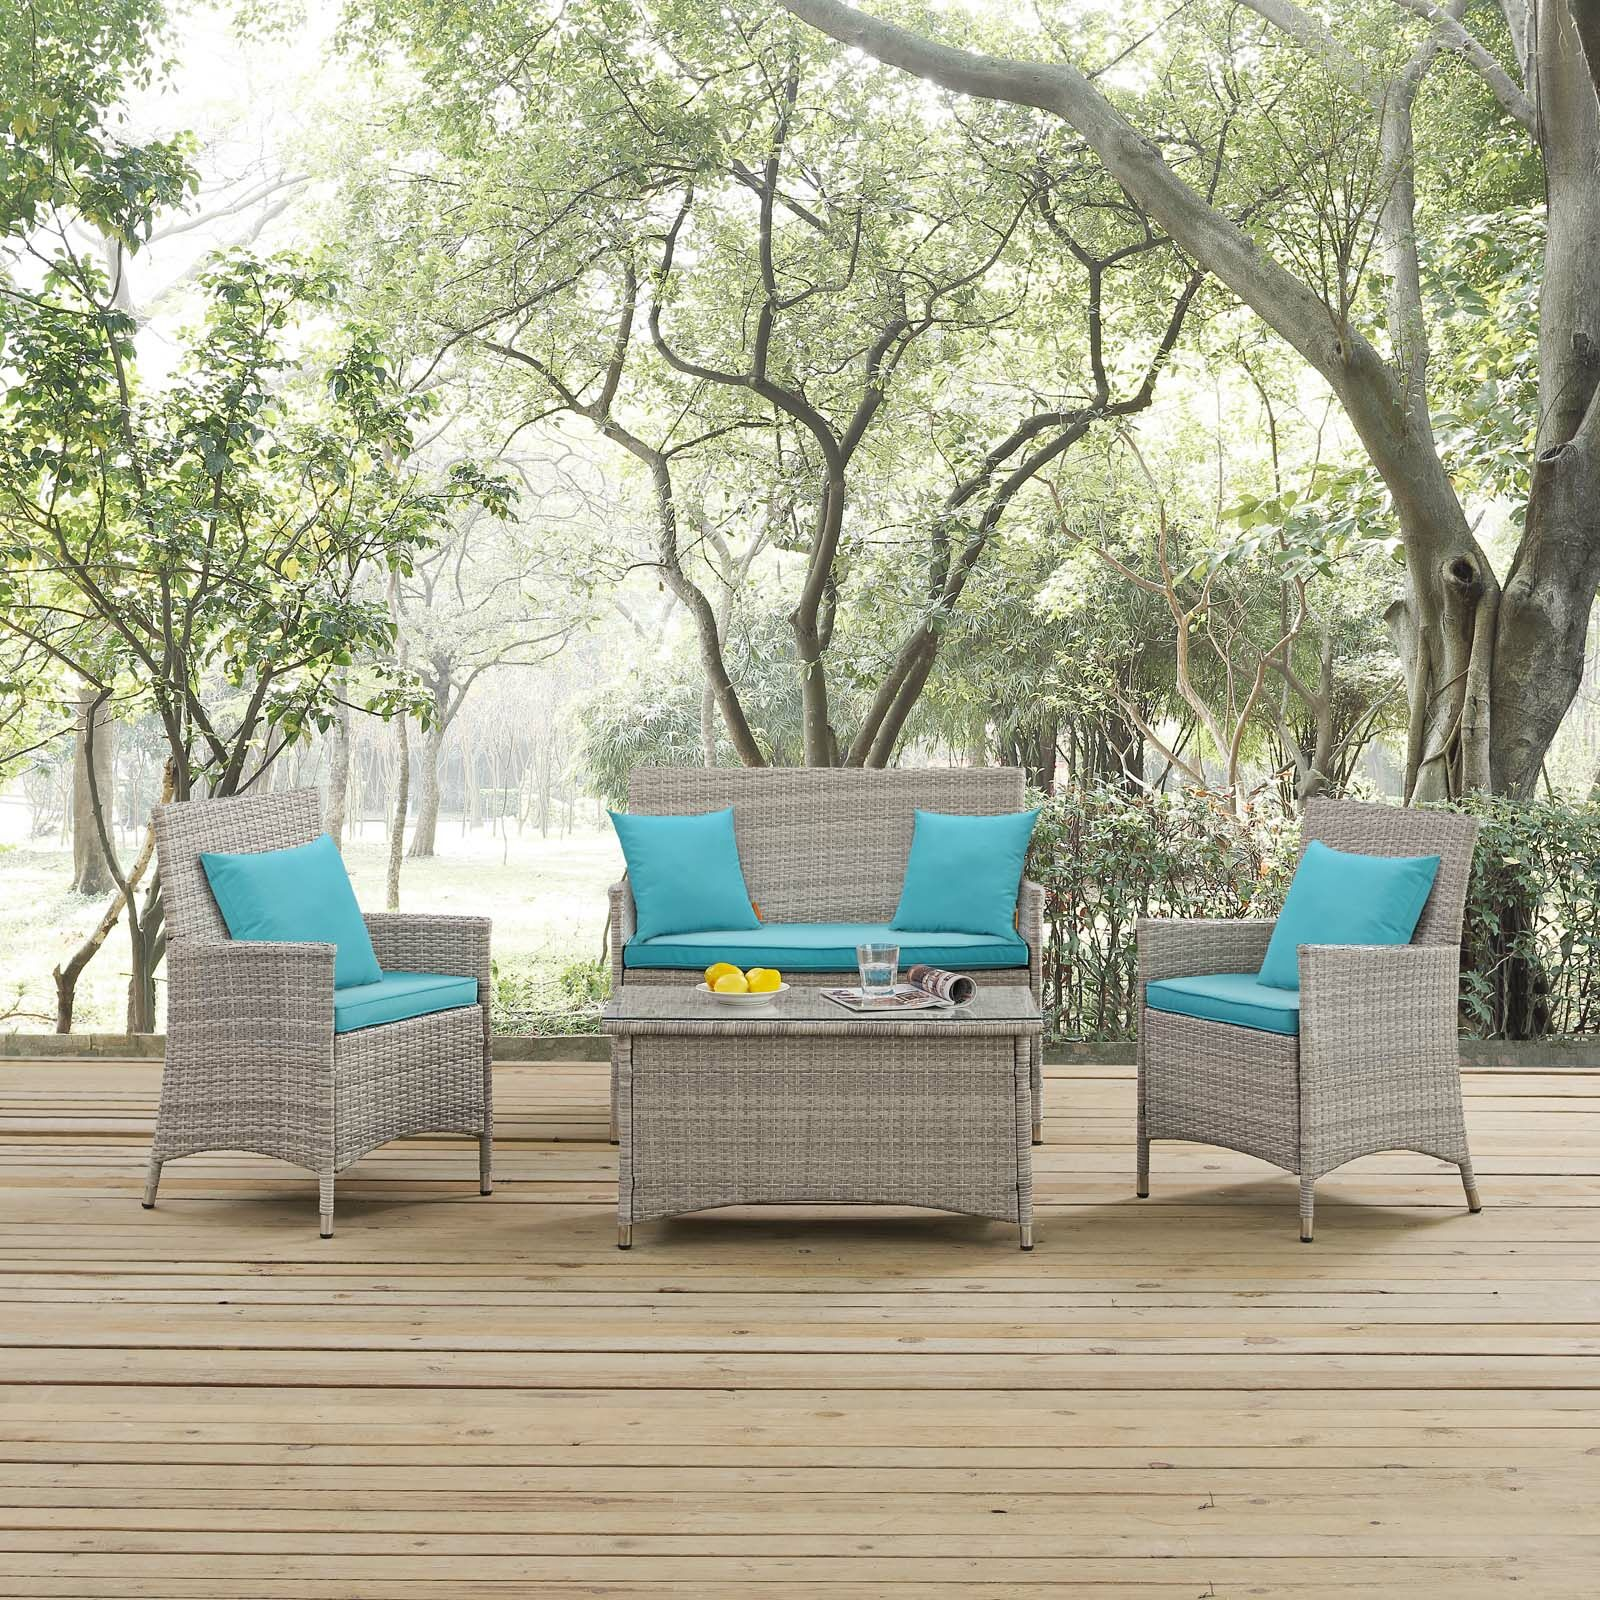 Azucena 4 Piece Rattan Sofa Set with Cushions Fabric: Turquoise